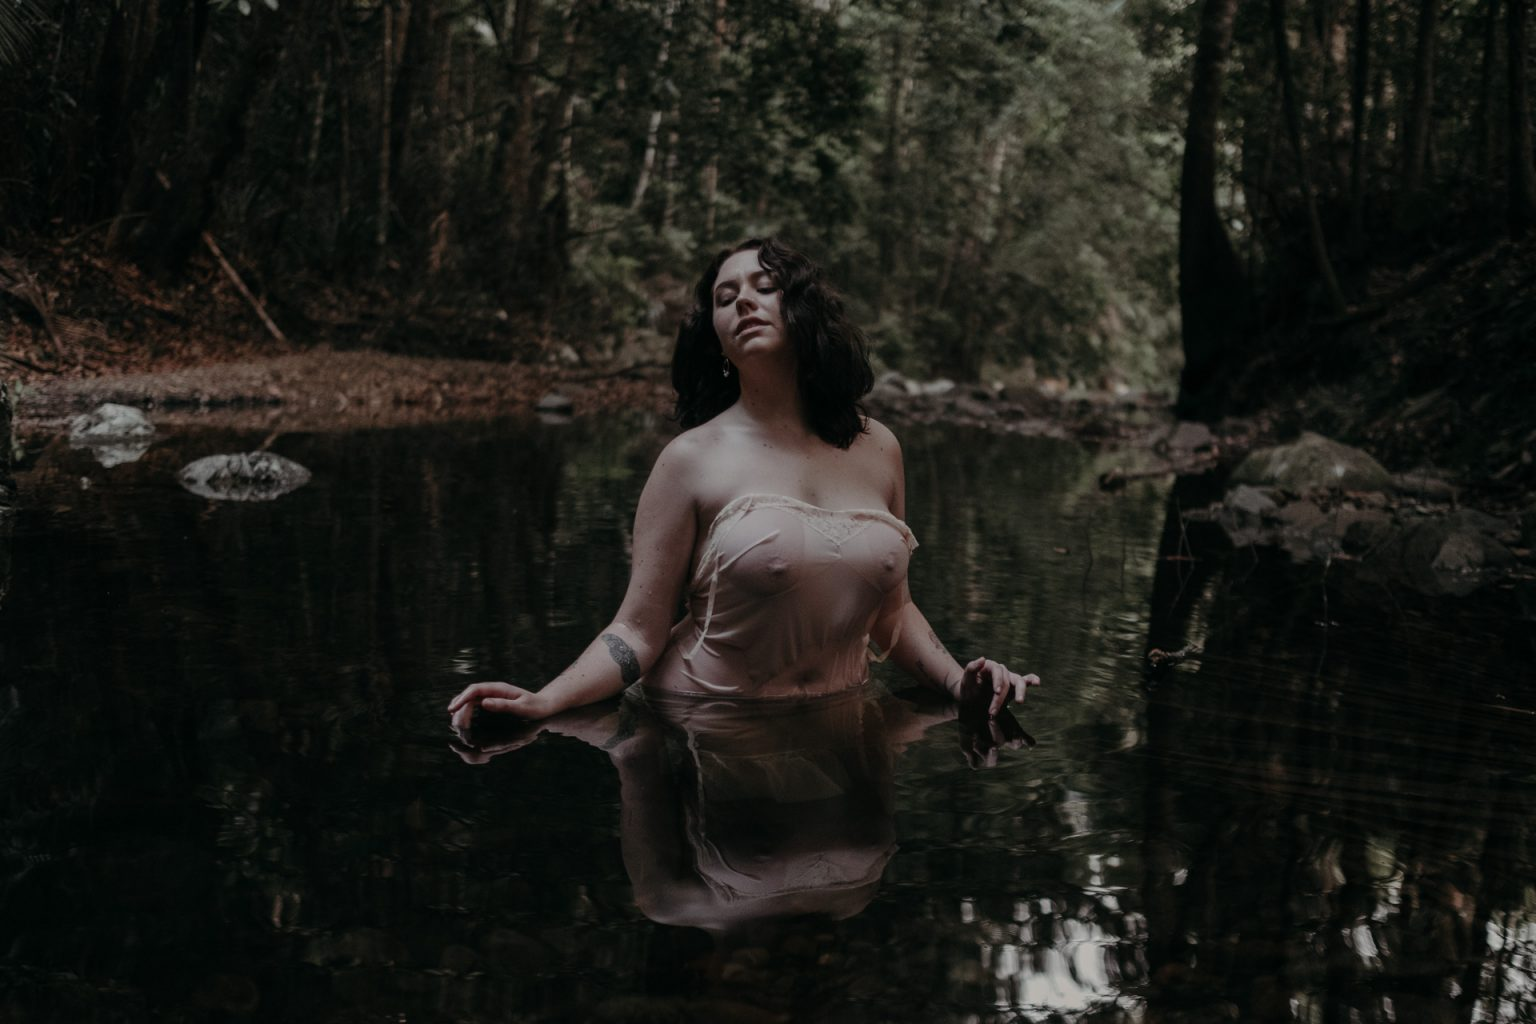 woman in see-through dress in forest pool